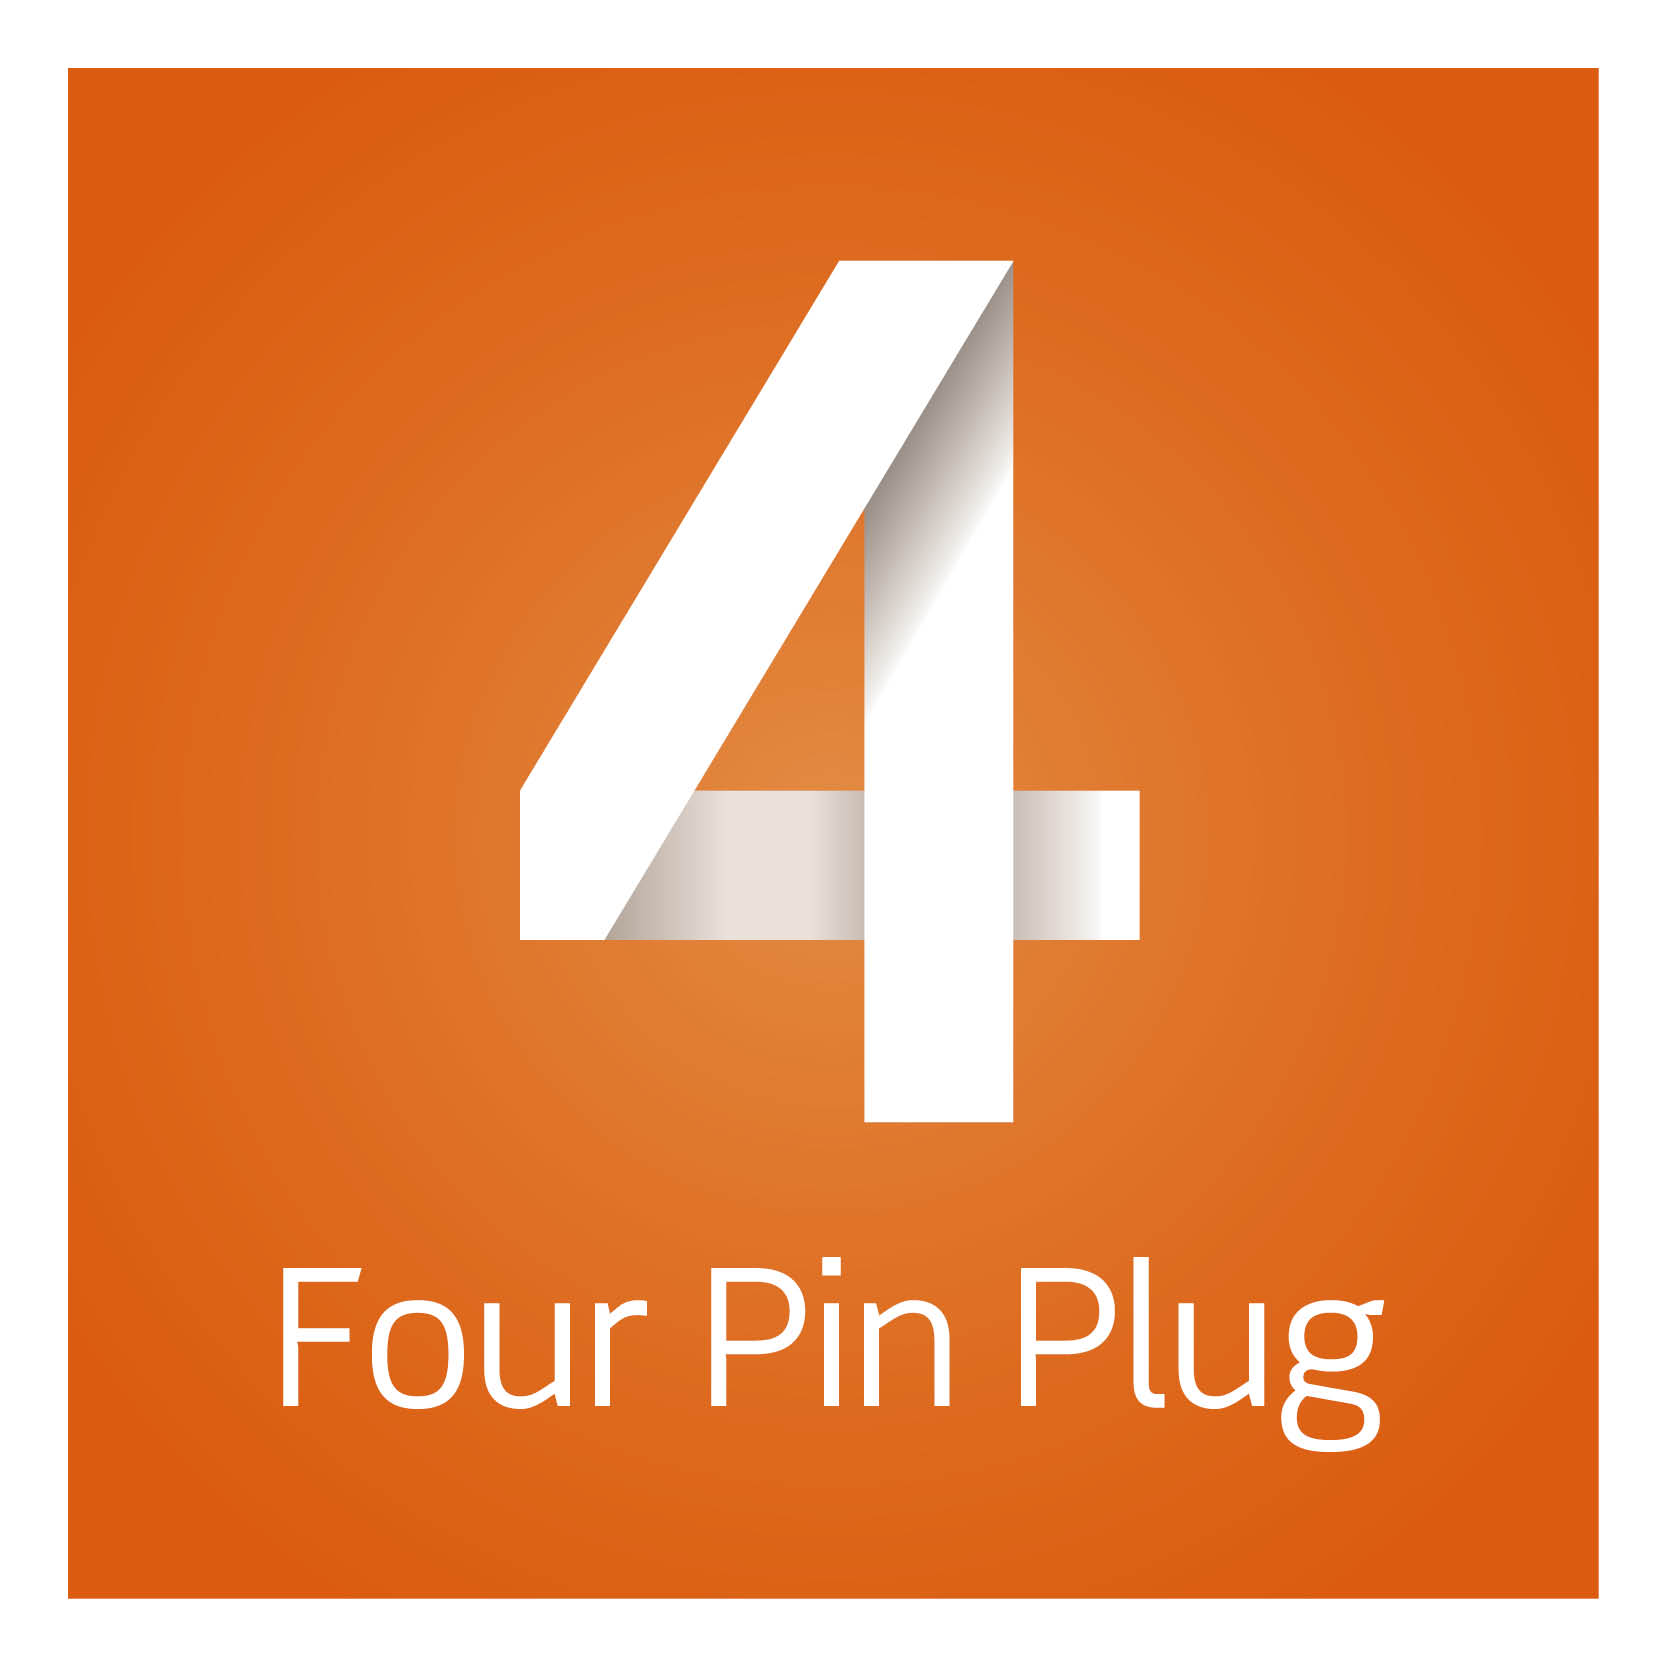 Four Pin Plug Advertising & Design